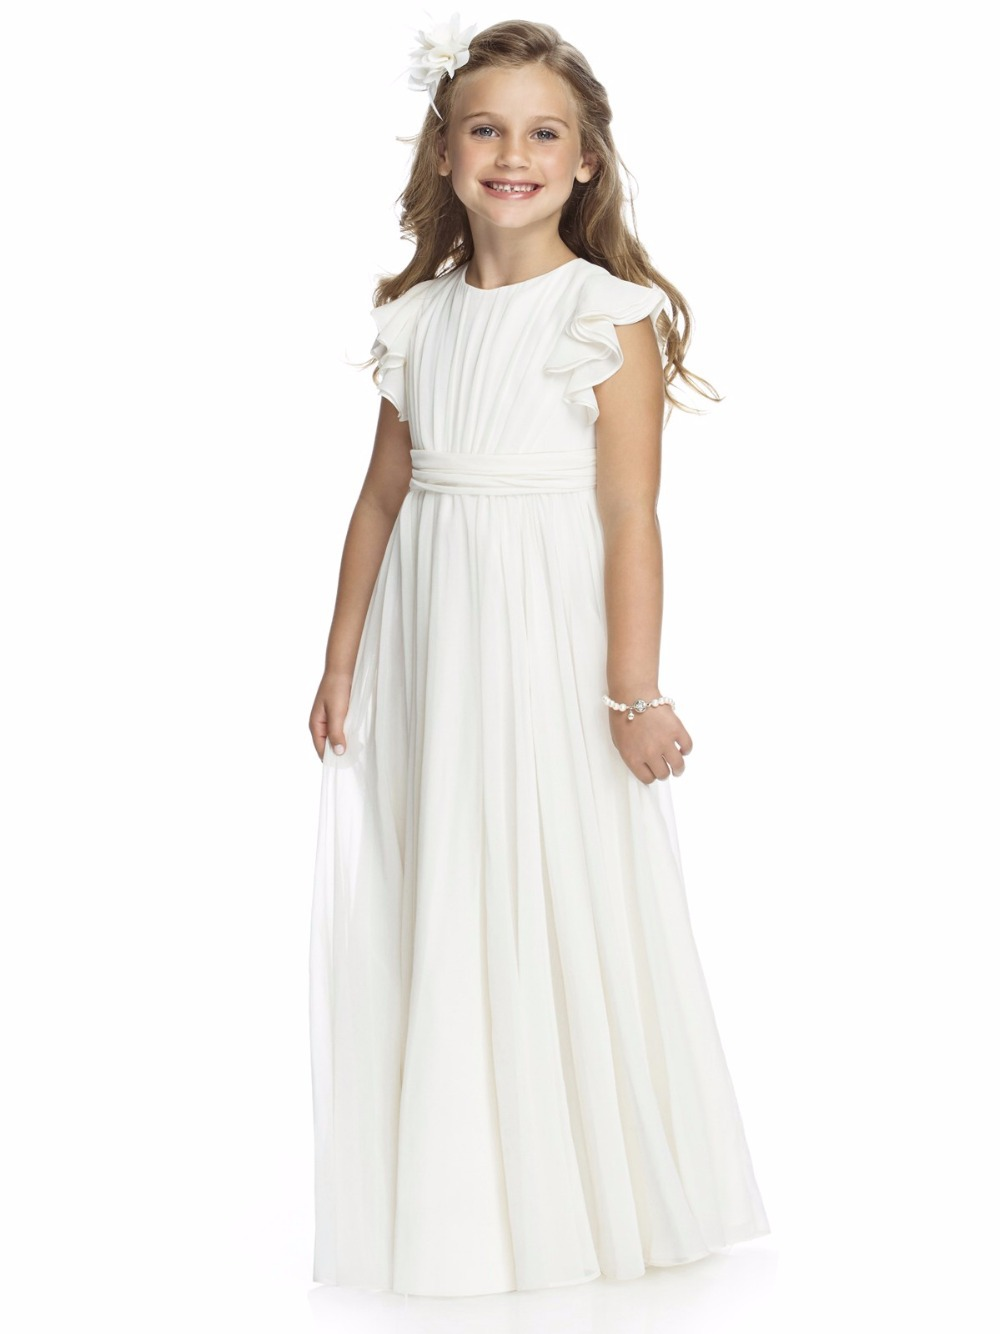 2016 Short Cap Sleeve Long Ivory Chiffon Cheap Flower Girls Dresses For Weddings Event A Line First Communion Dress For Girls(China (Mainland))